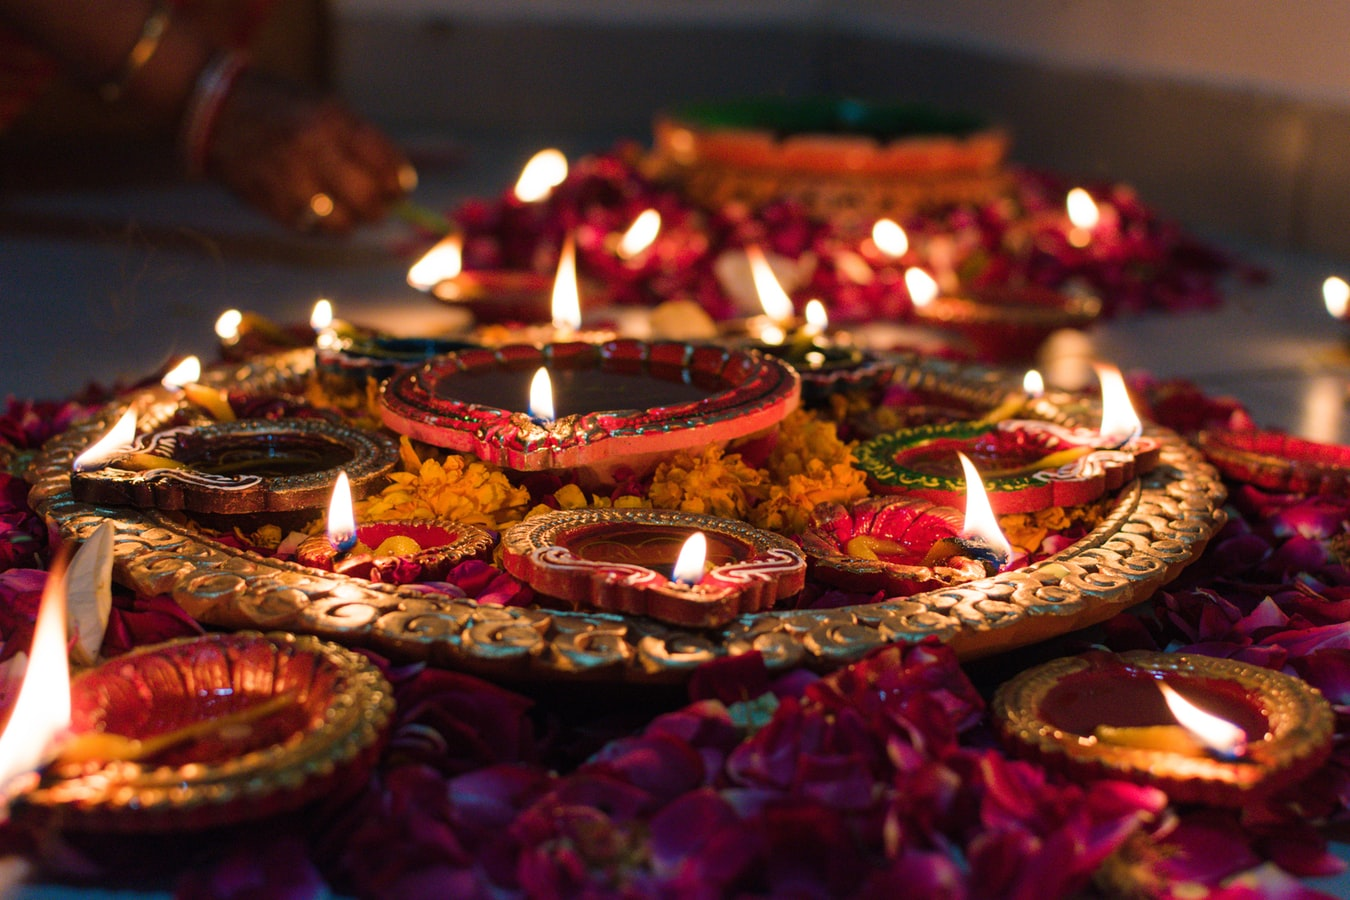 Earthern lamps (diyas) placed over rose petals makes for an excellent karwa chauth tips